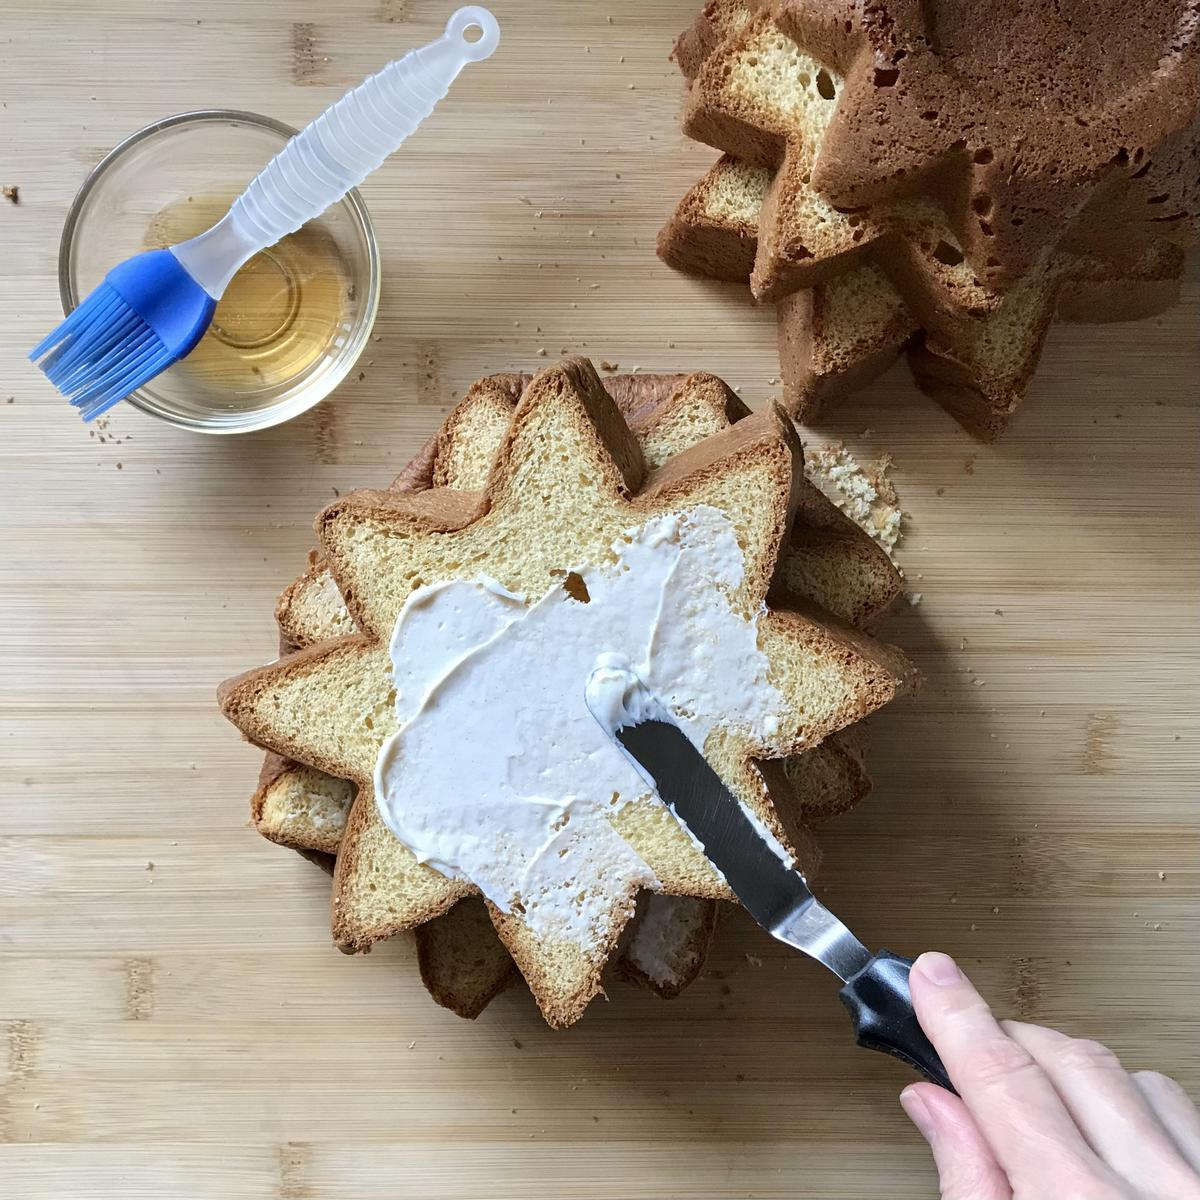 Whipped ricotta spread over the base of a pandoro cake.